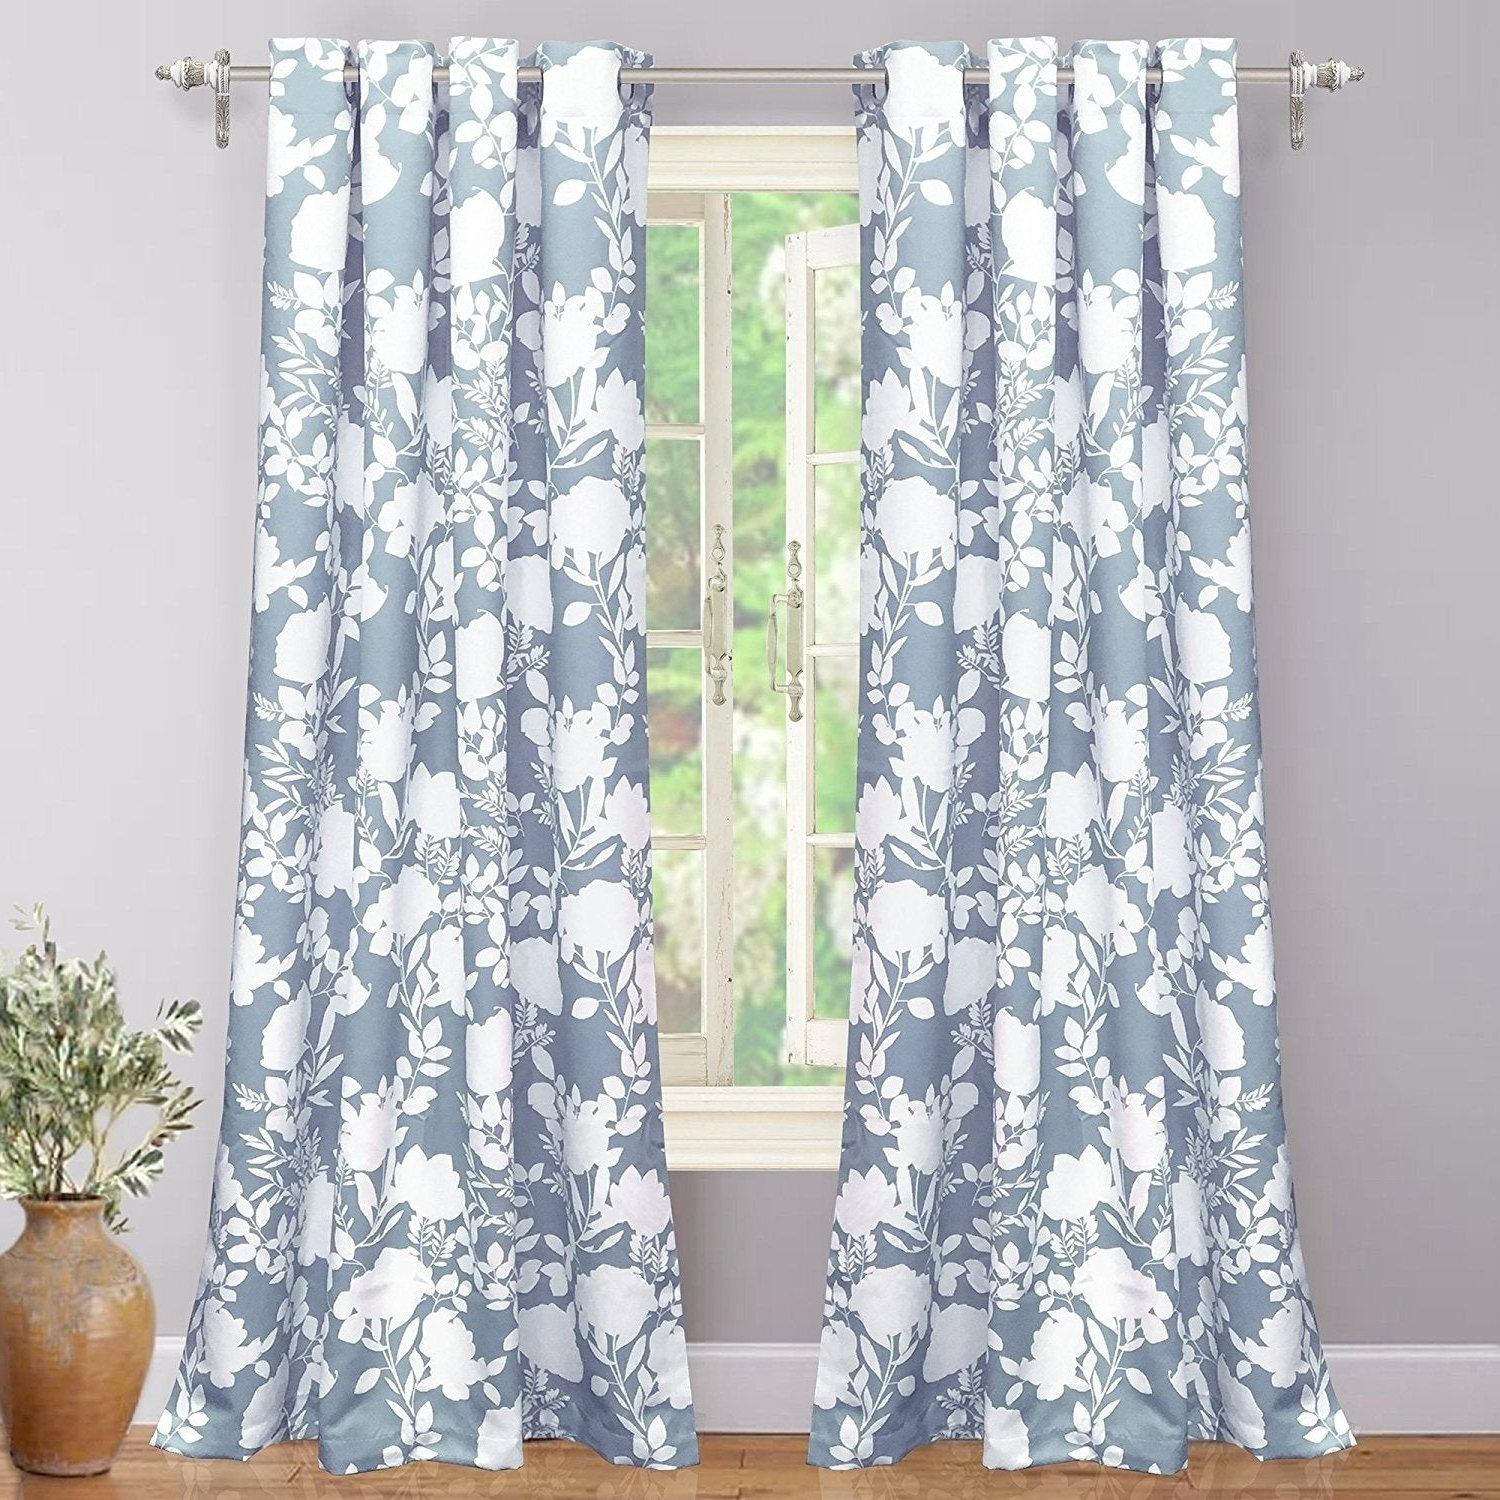 Newest Porch & Den Nolana Floral Room Darkening Grommet Window Curtain Panel Pair In Floral Pattern Room Darkening Window Curtain Panel Pairs (View 2 of 20)